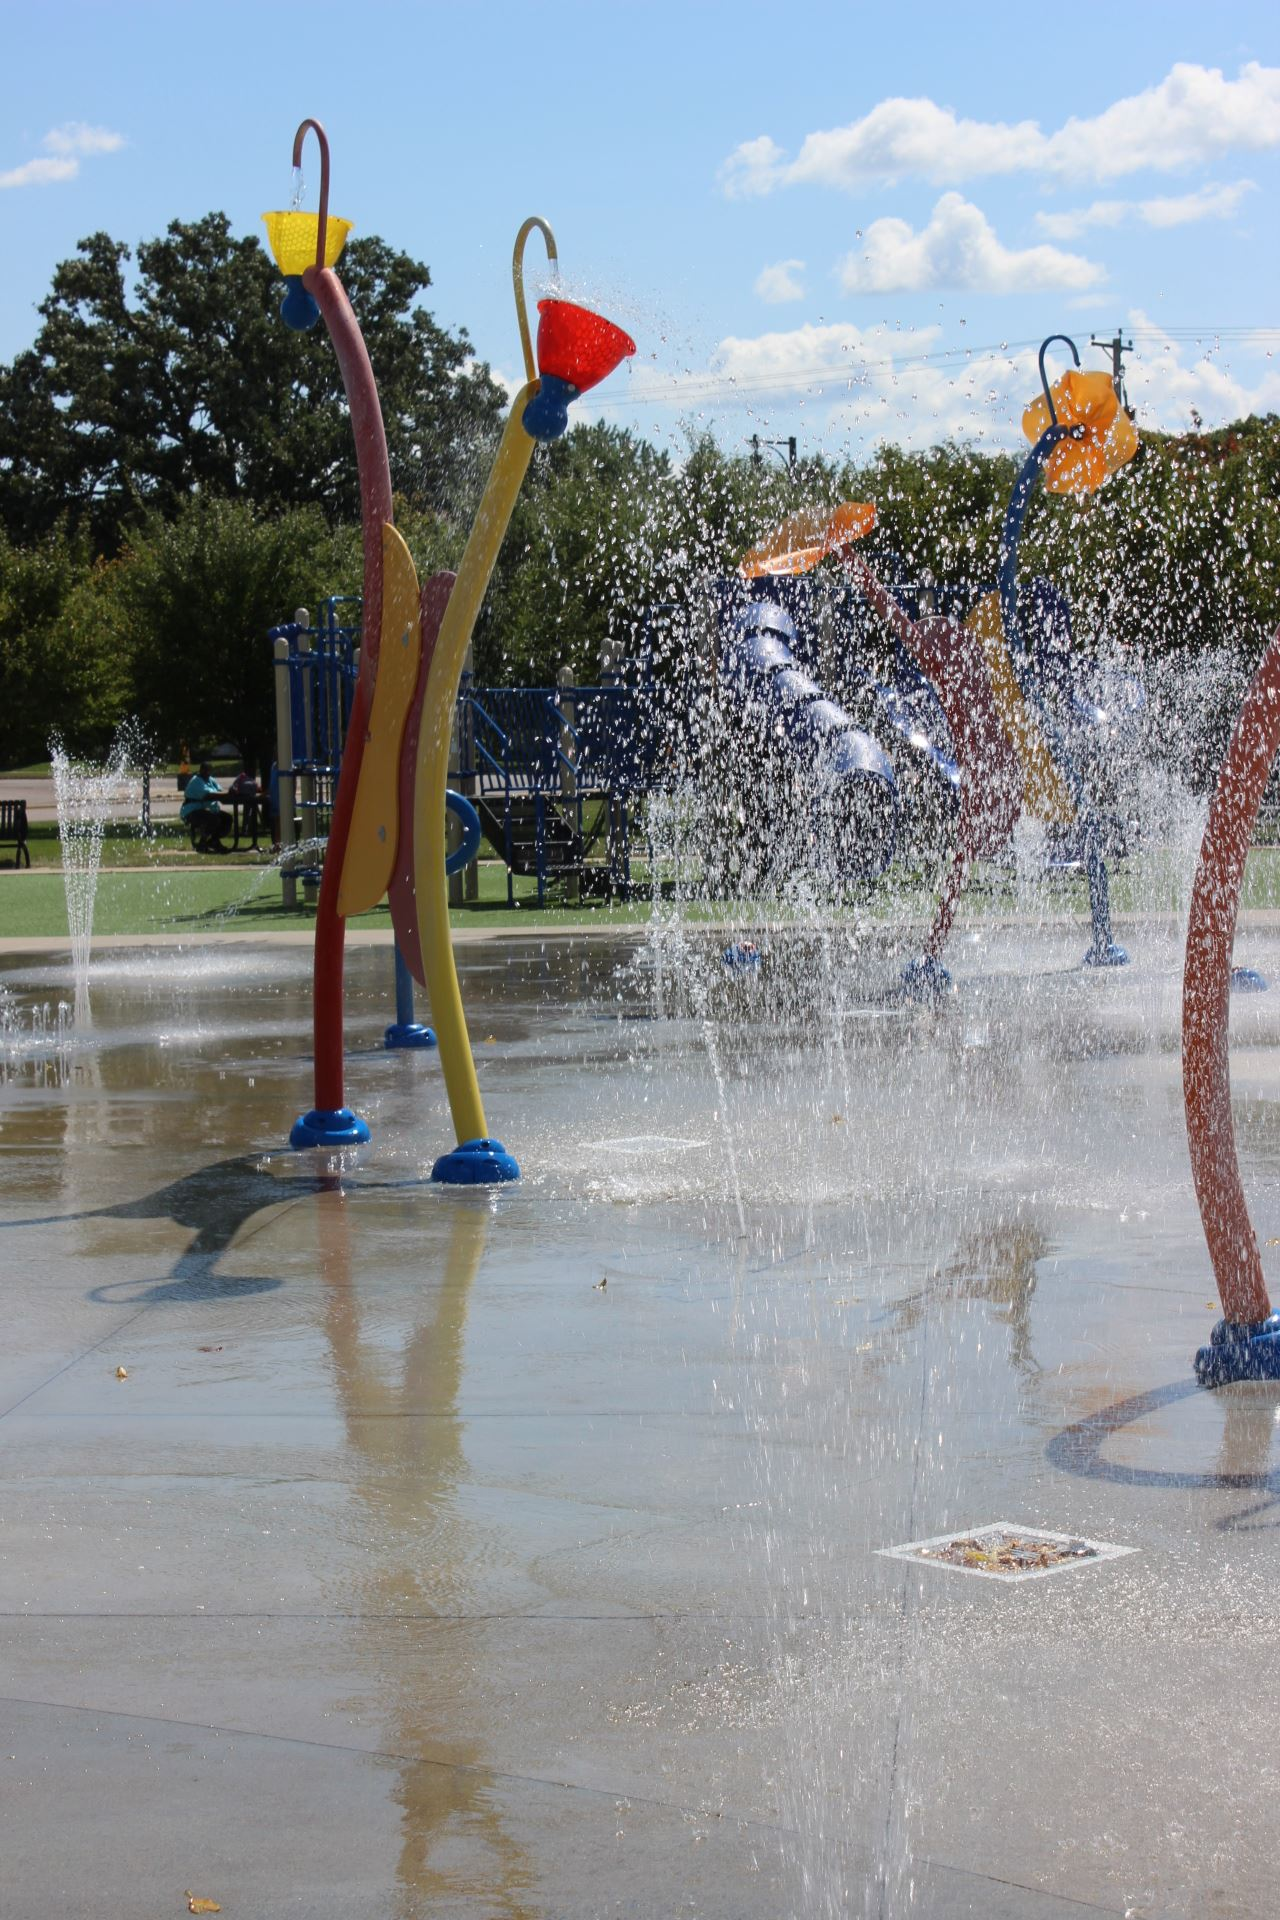 Action picture of the water features at the Splash Pad